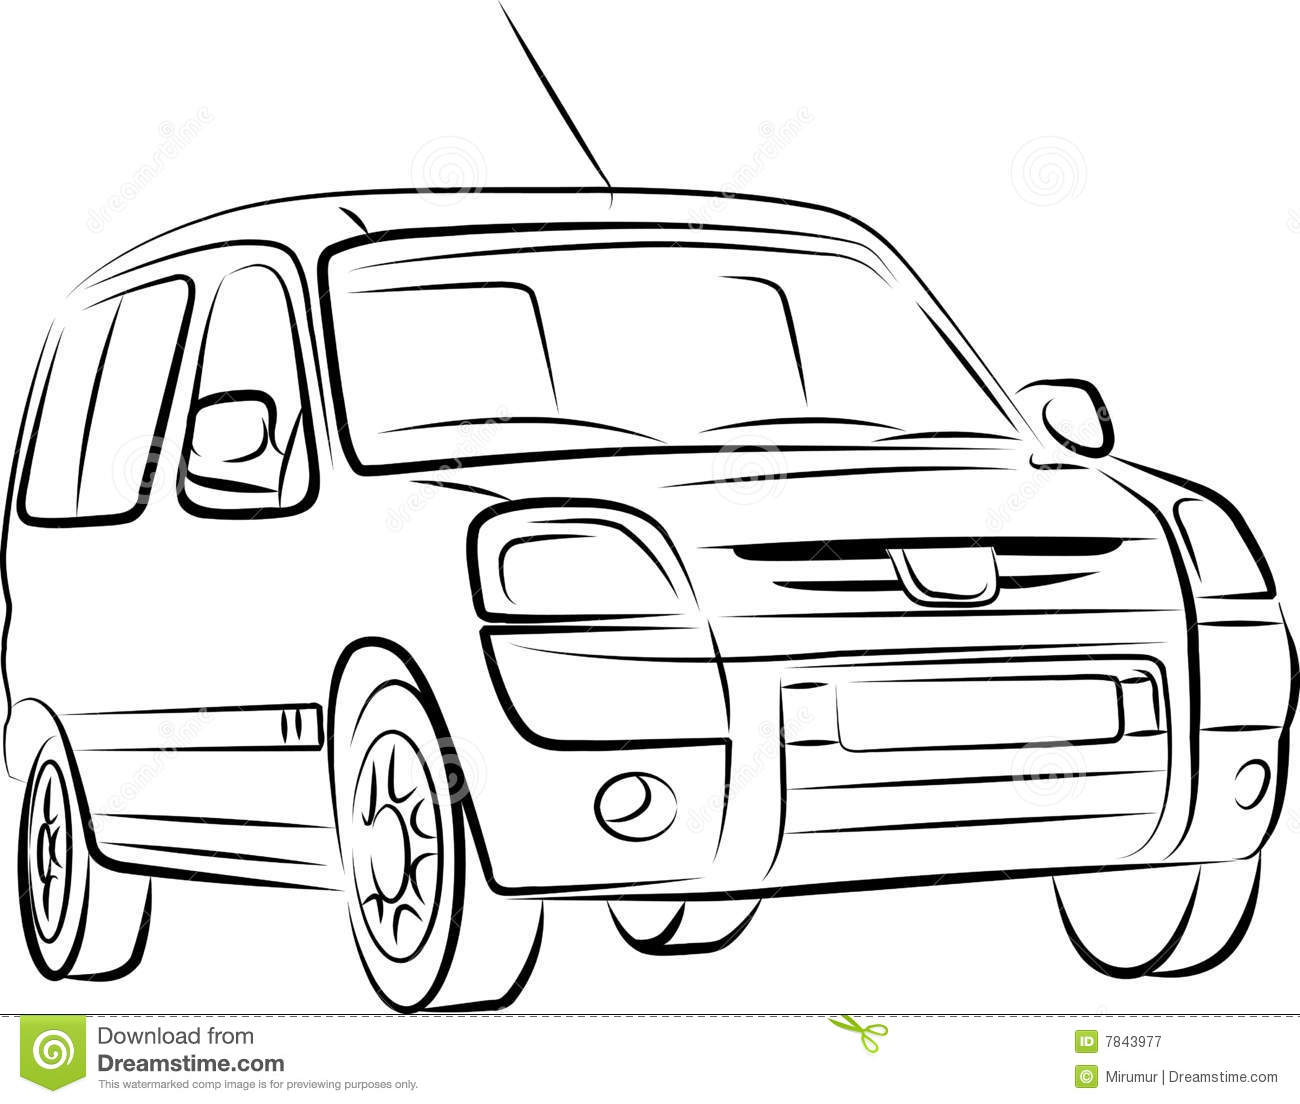 how to draw the back of a car